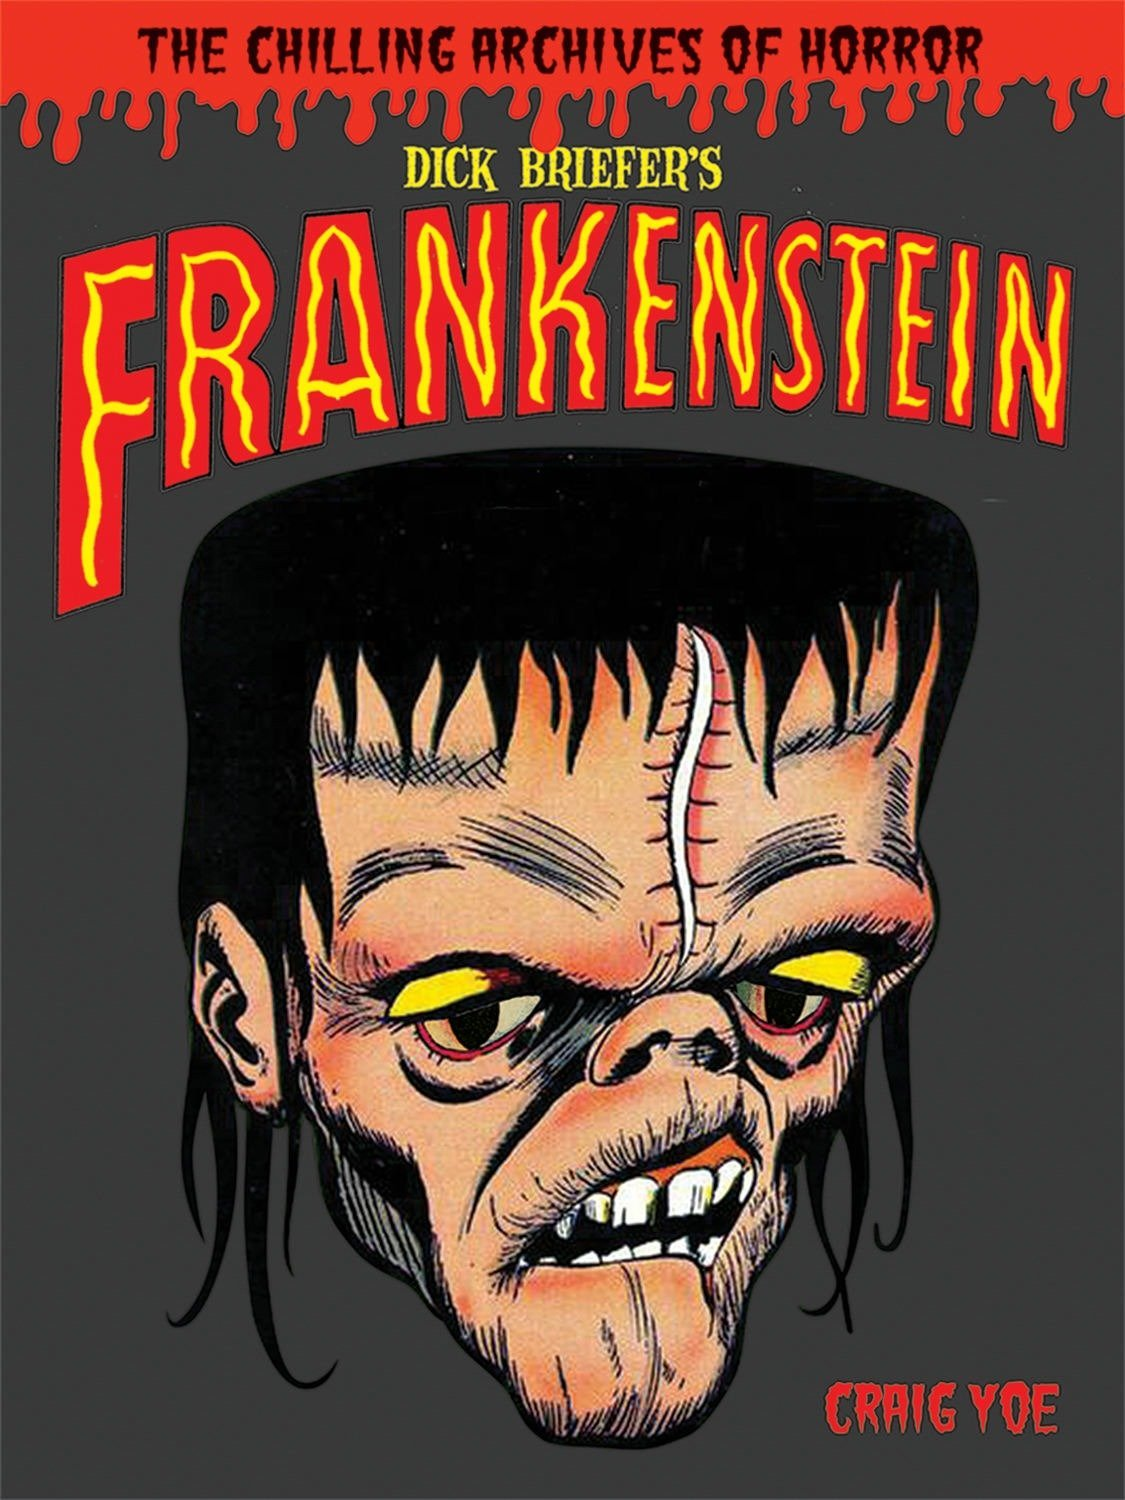 Dick Briefer's Frankenstein (Library of Horror Comics Master) by IDW Publishing